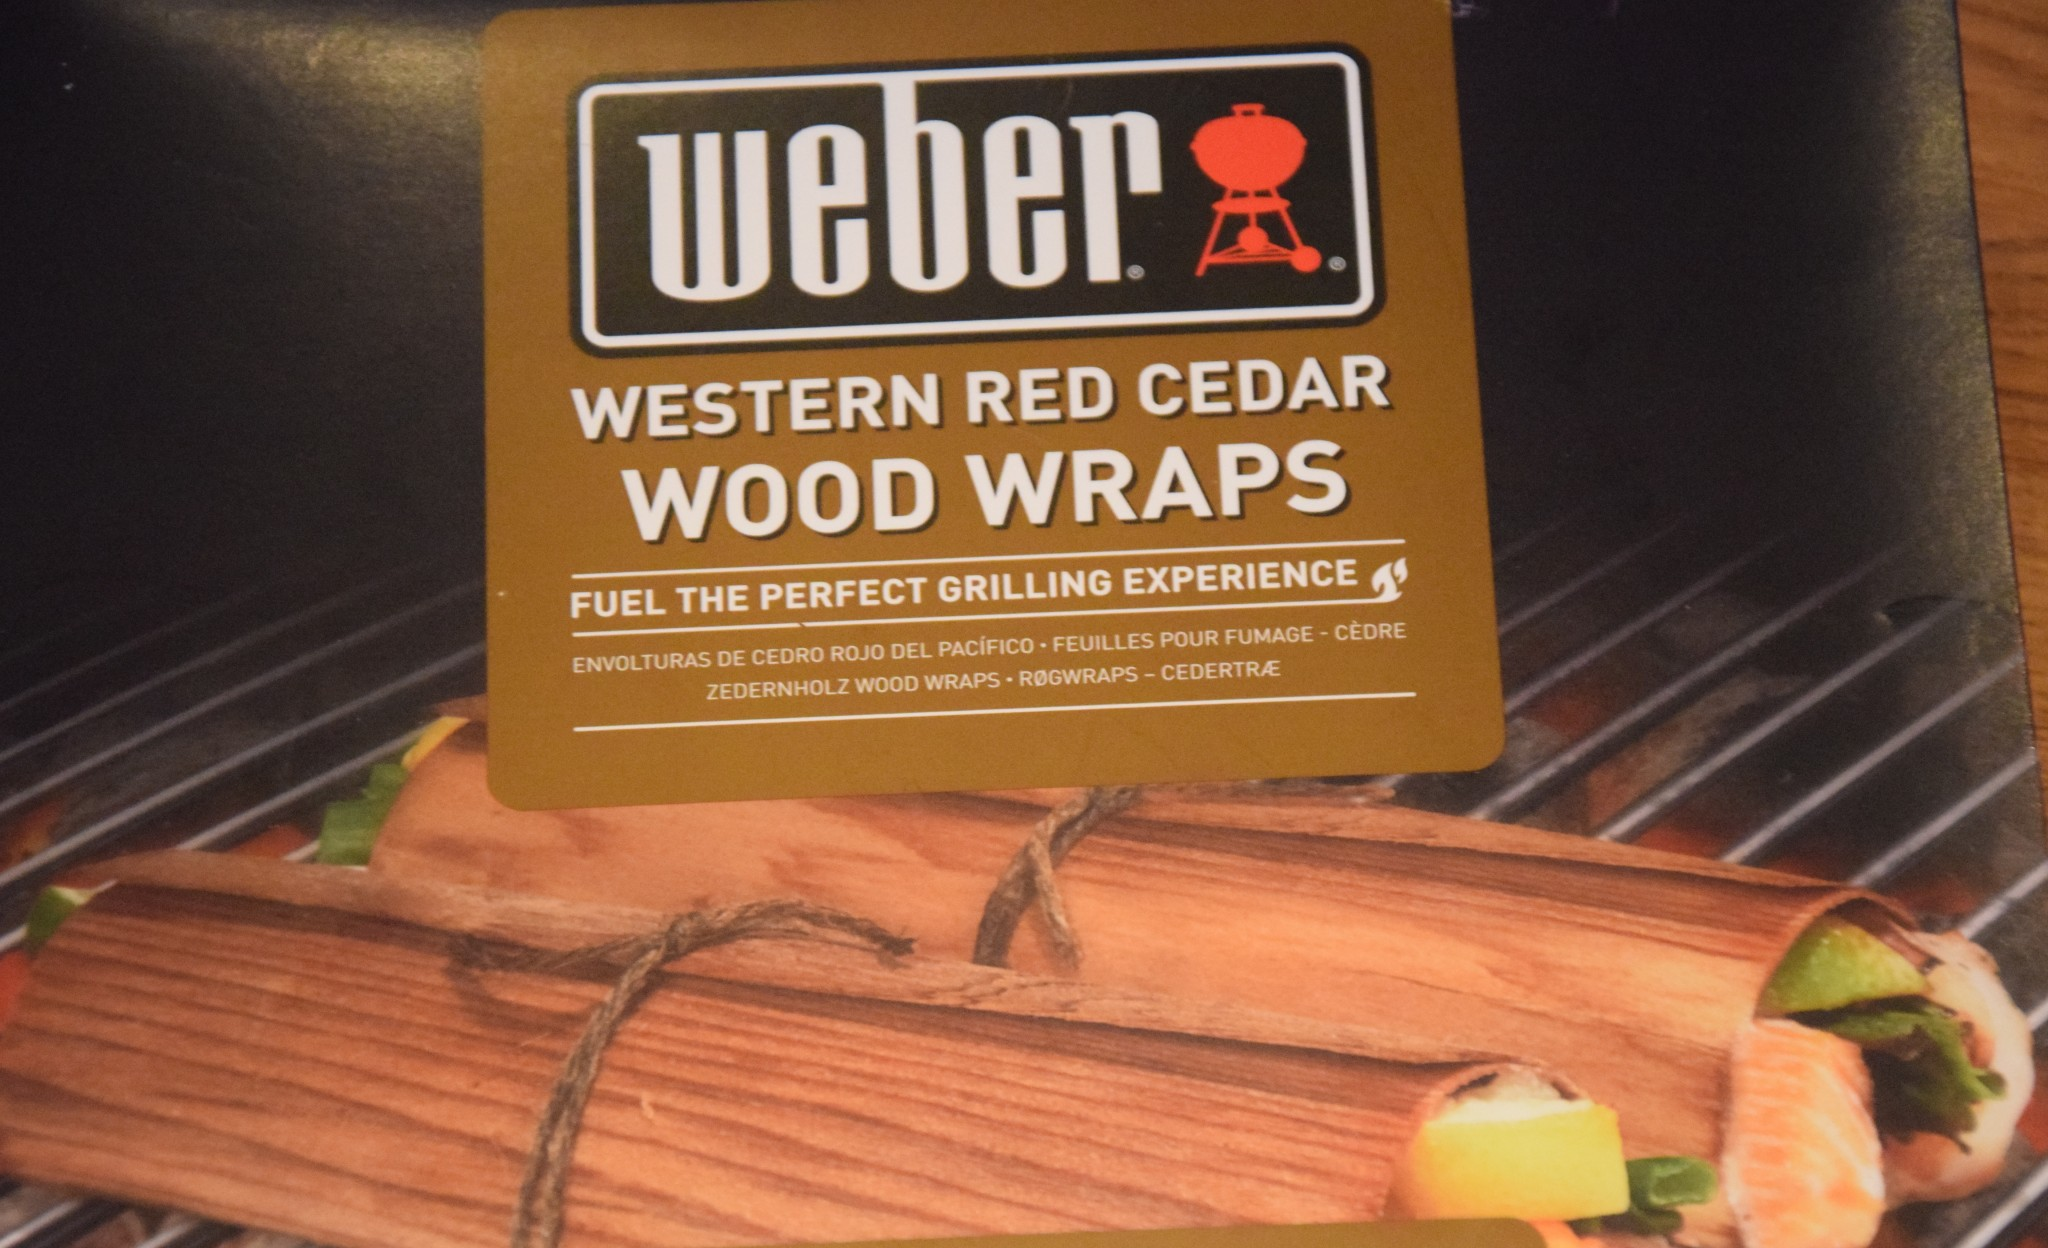 Weber Western Red Cedar Wood Wraps